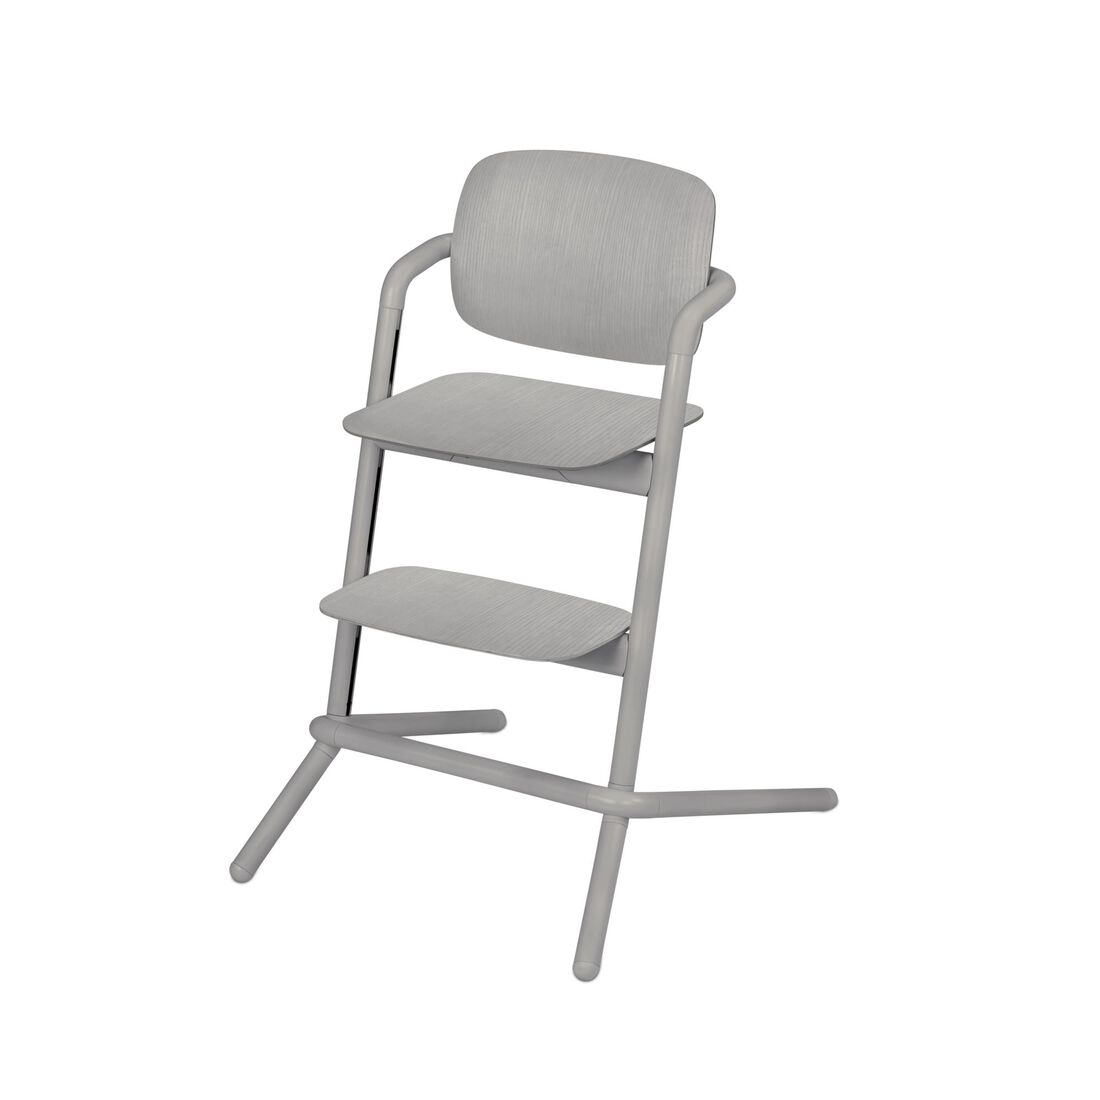 CYBEX Lemo Hochstuhl - Storm Grey (Wood) in Storm Grey (Wood) large Bild 1